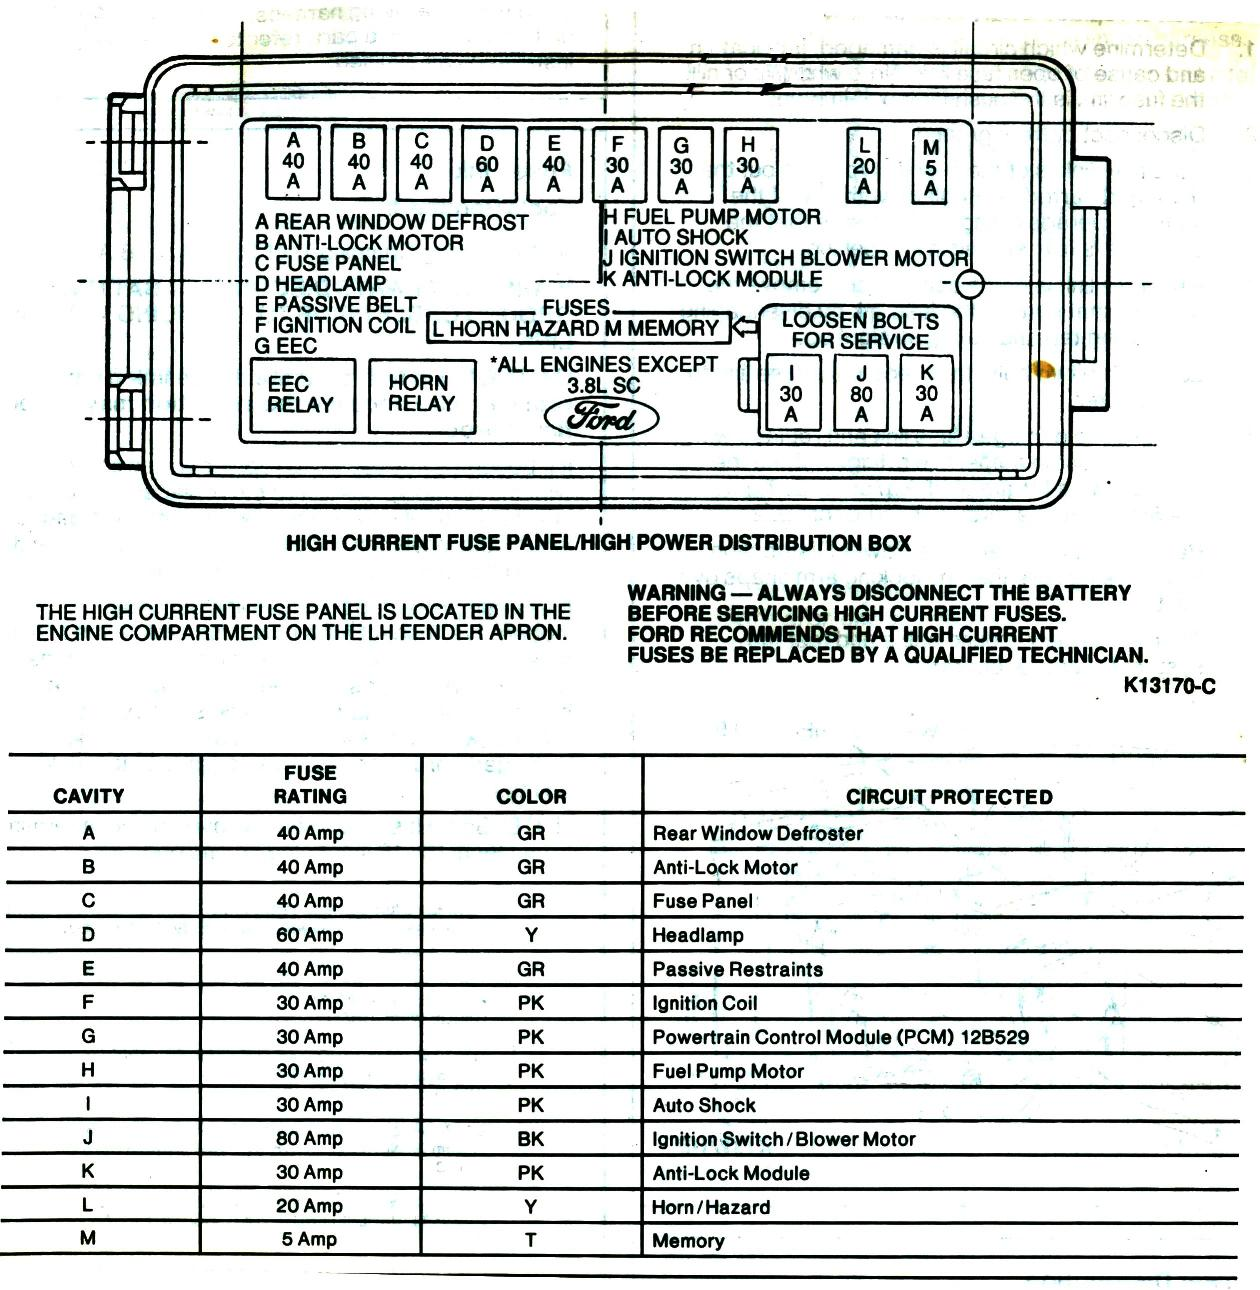 dist box under dash fuse box diagram? 2006 Ford Taurus Fuse Box Diagram at gsmx.co